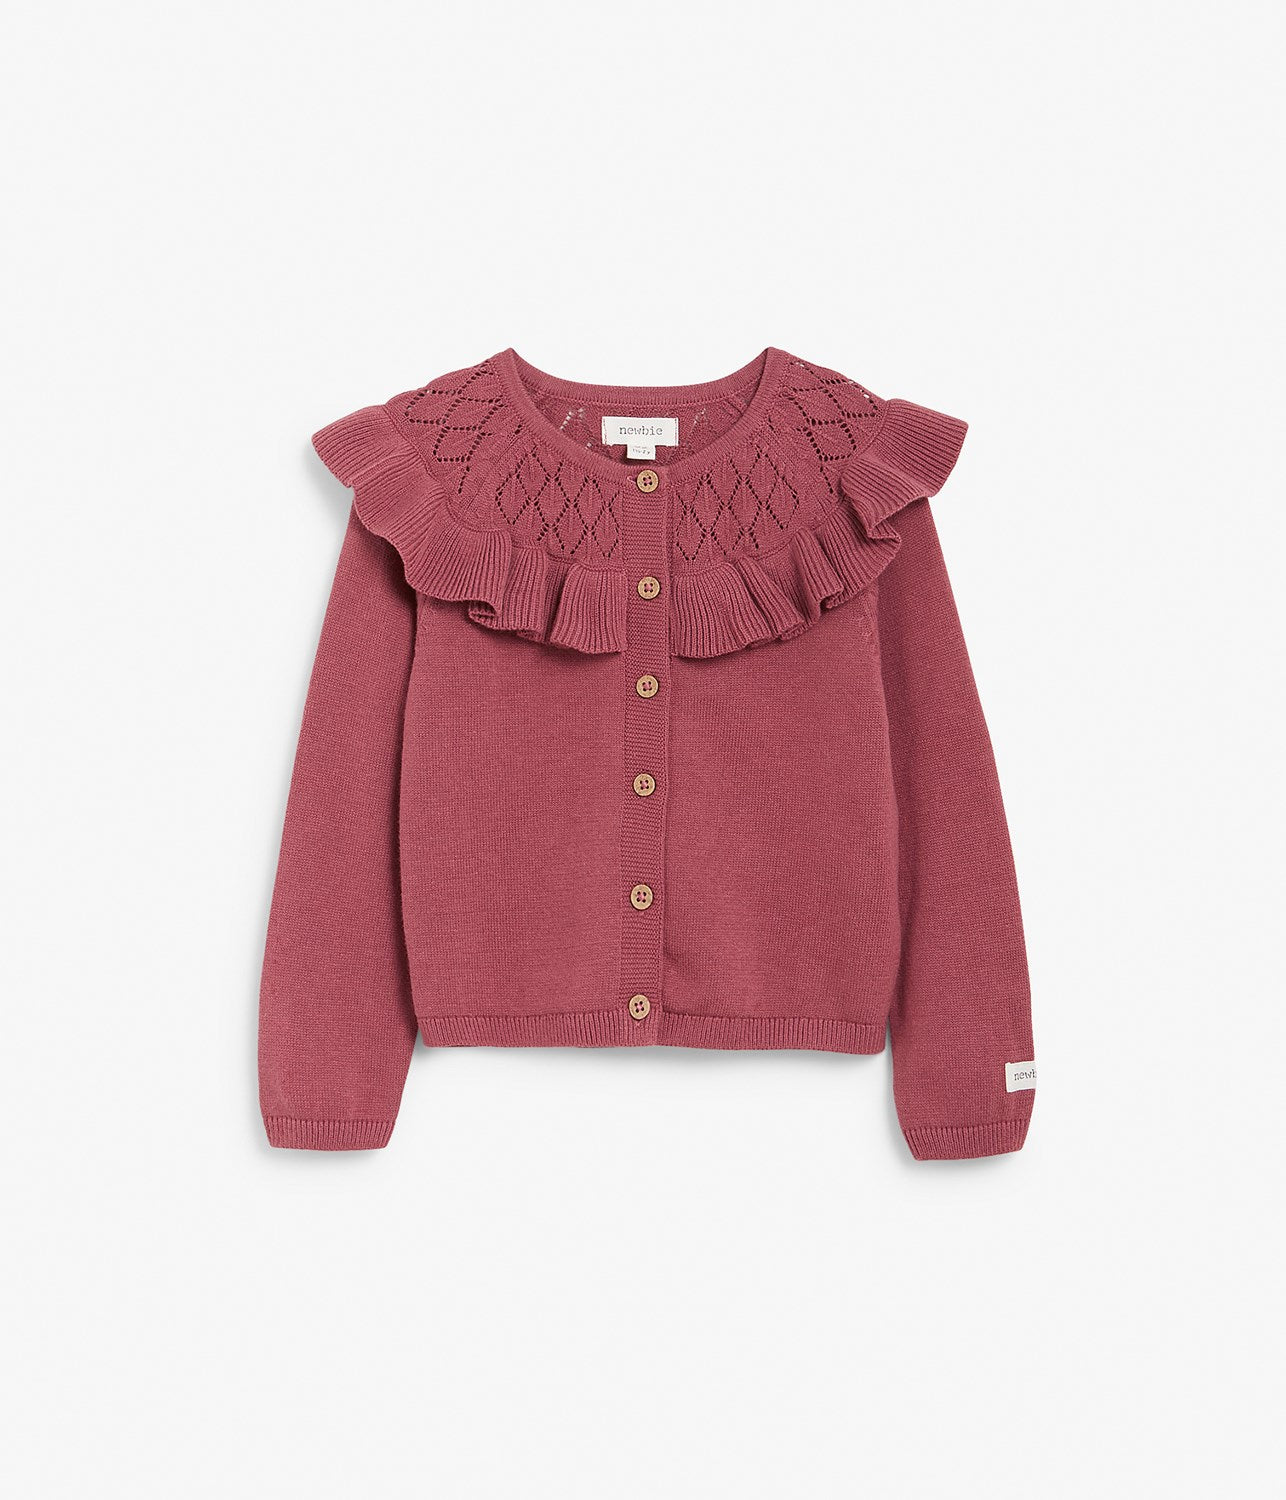 Kids pink knitted cardigan with frills